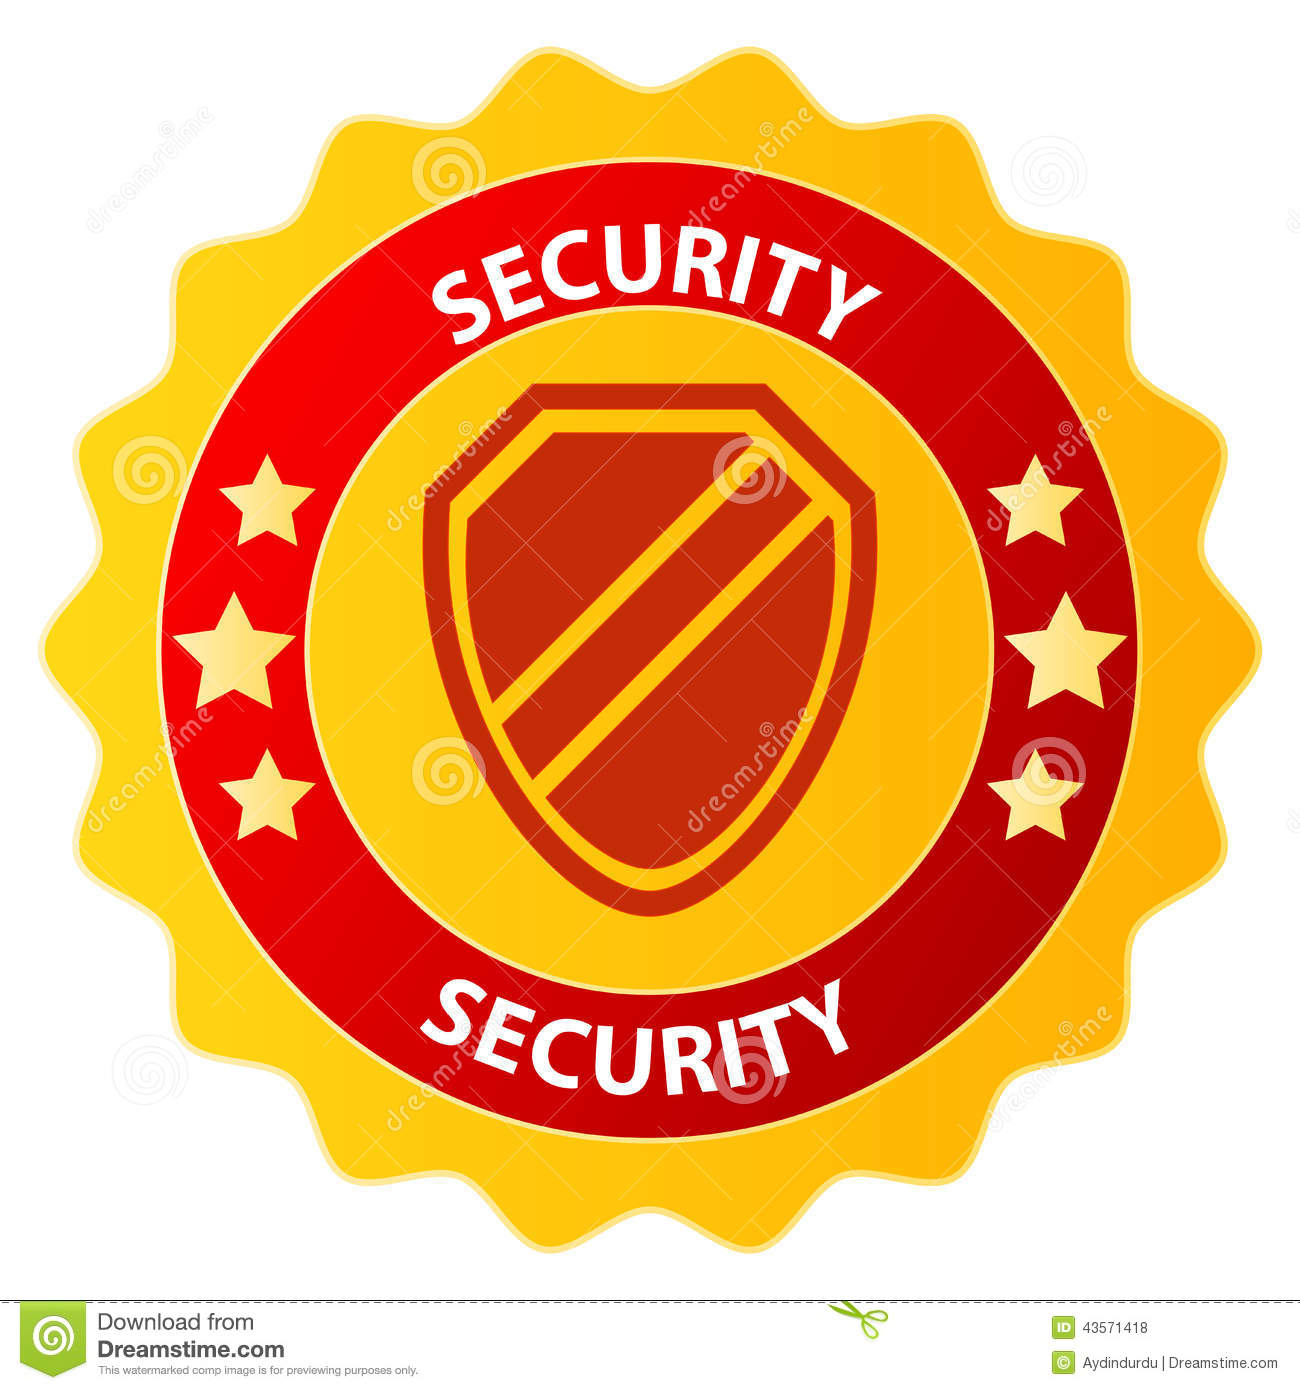 Security badge clipart clip art black and white stock Security Badge Stock Vector - Image: 43571418 clip art black and white stock